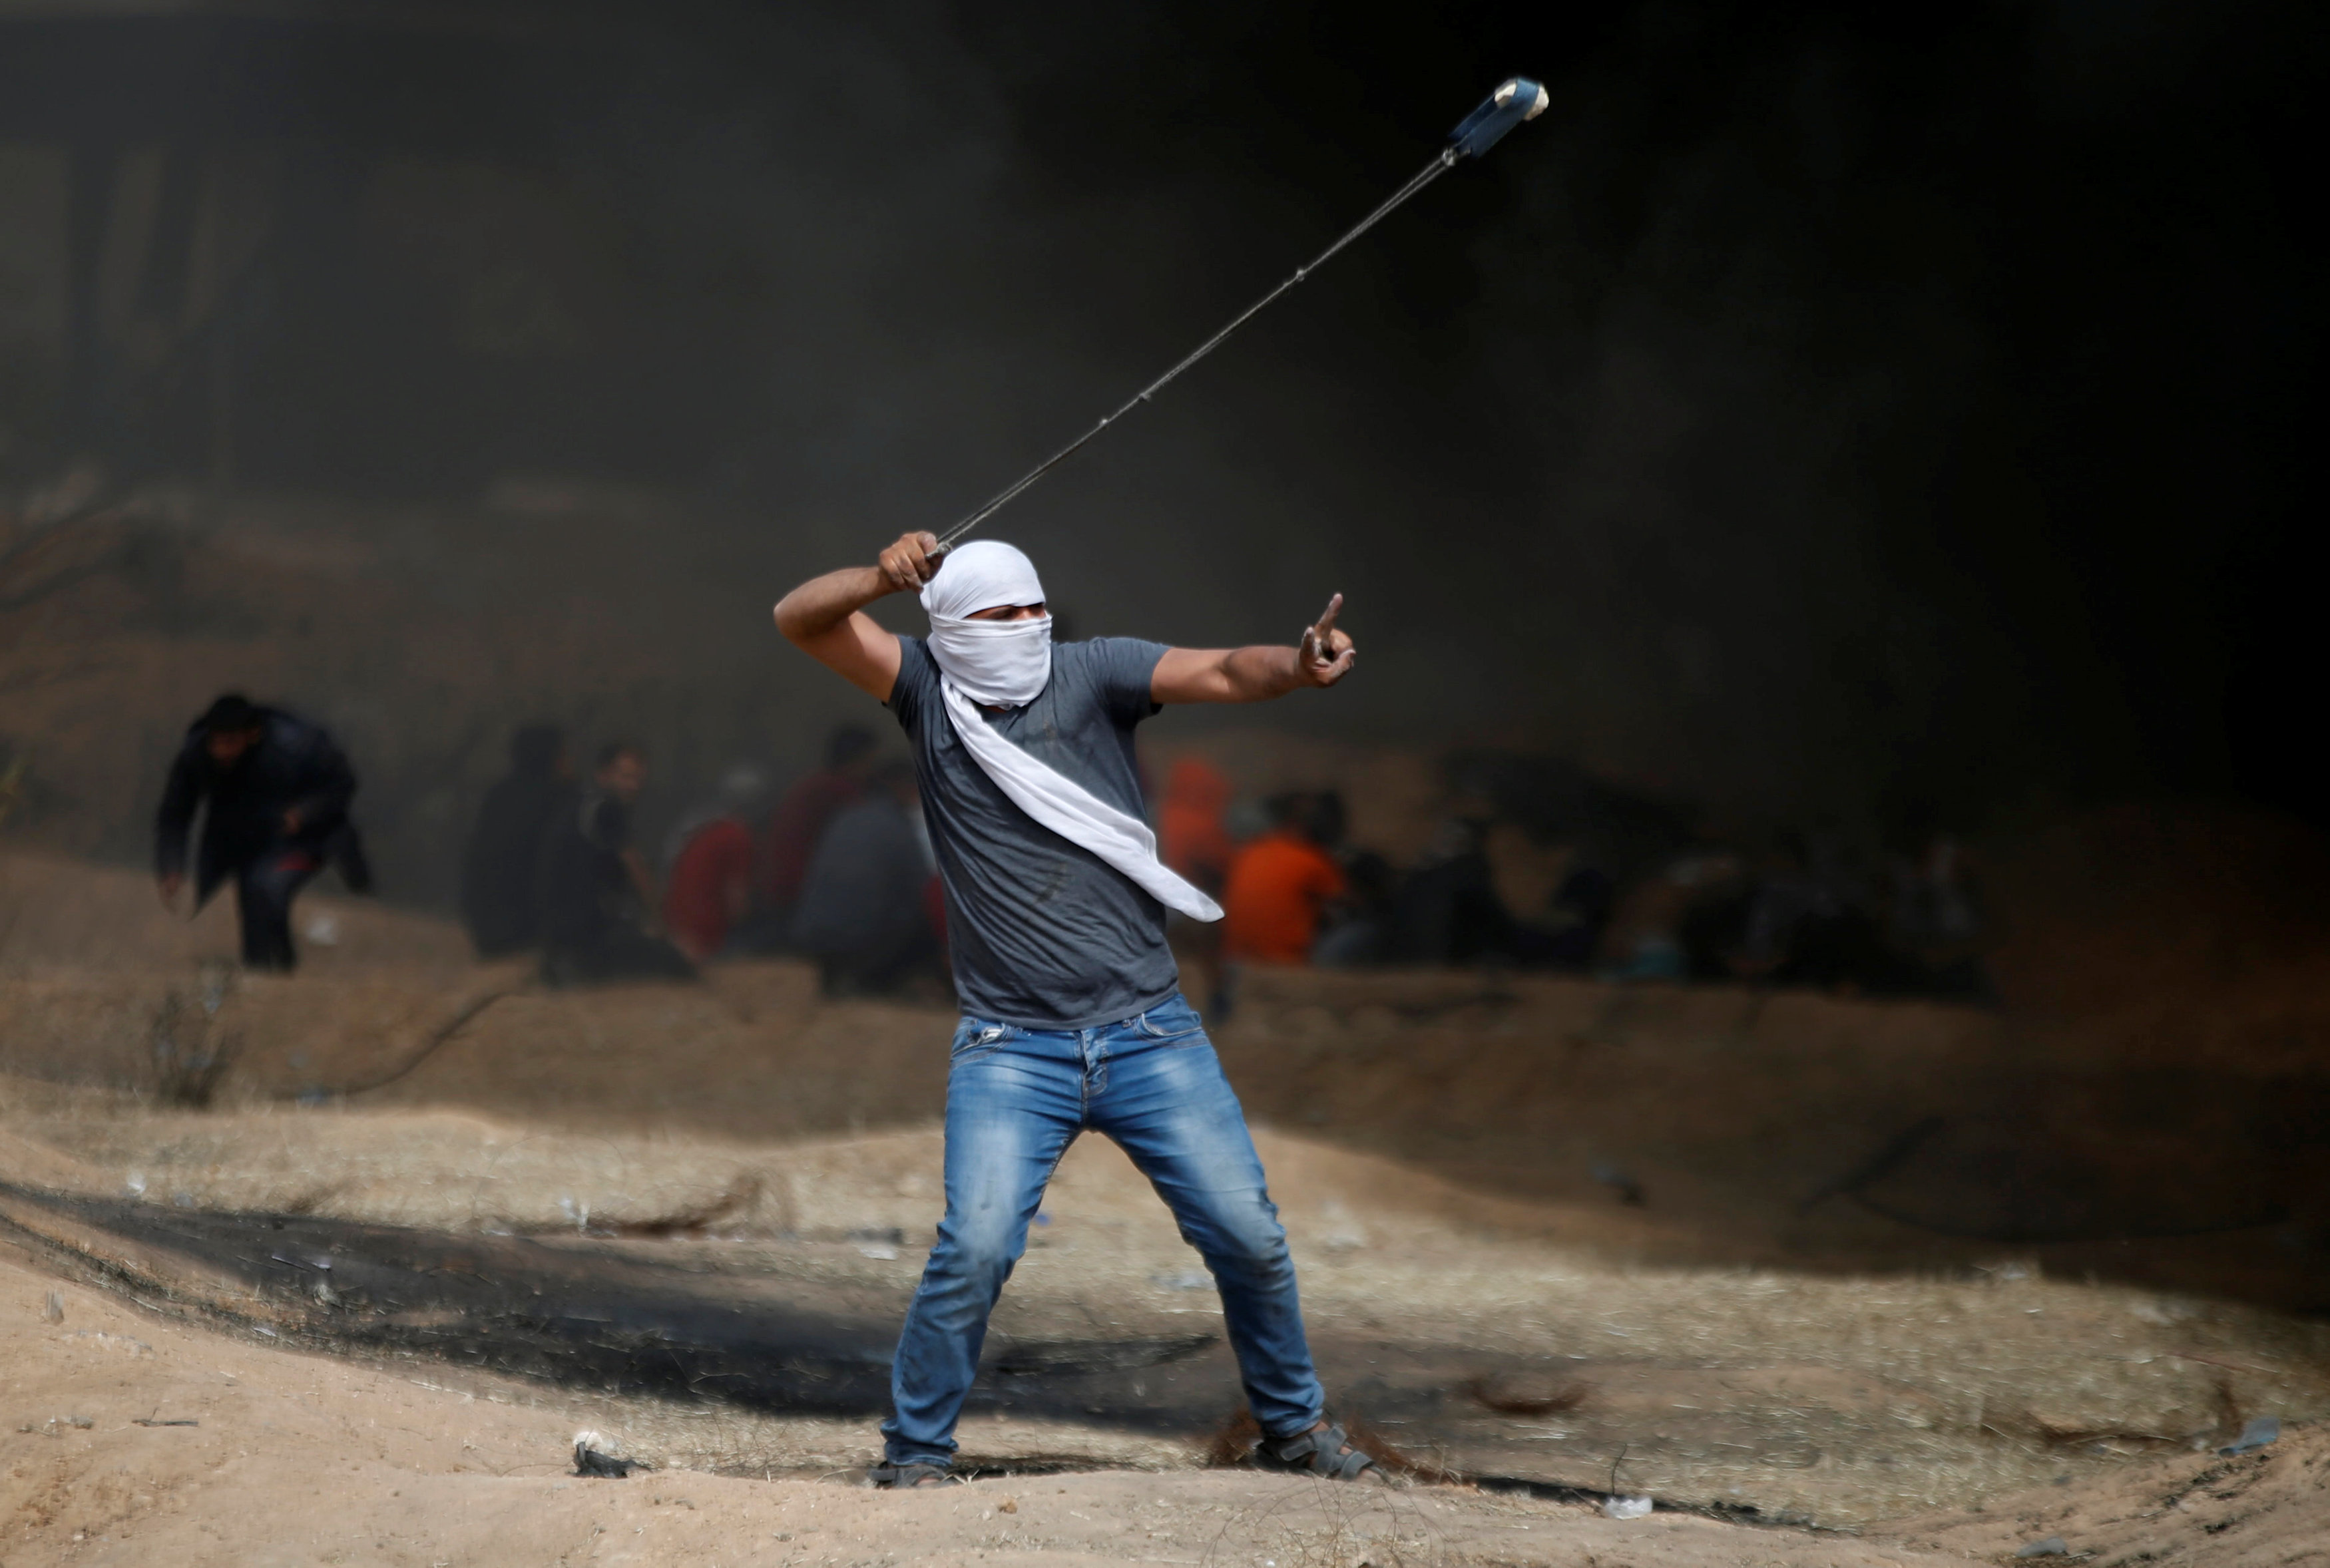 A demonstrator gestures as he hurls stones during clashes with Israeli troops at a protest at the Israel-Gaza border where Palestinians demand the right to return to their homeland, east of Gaza City April 20, 2018. REUTERS/Mohammed Salem